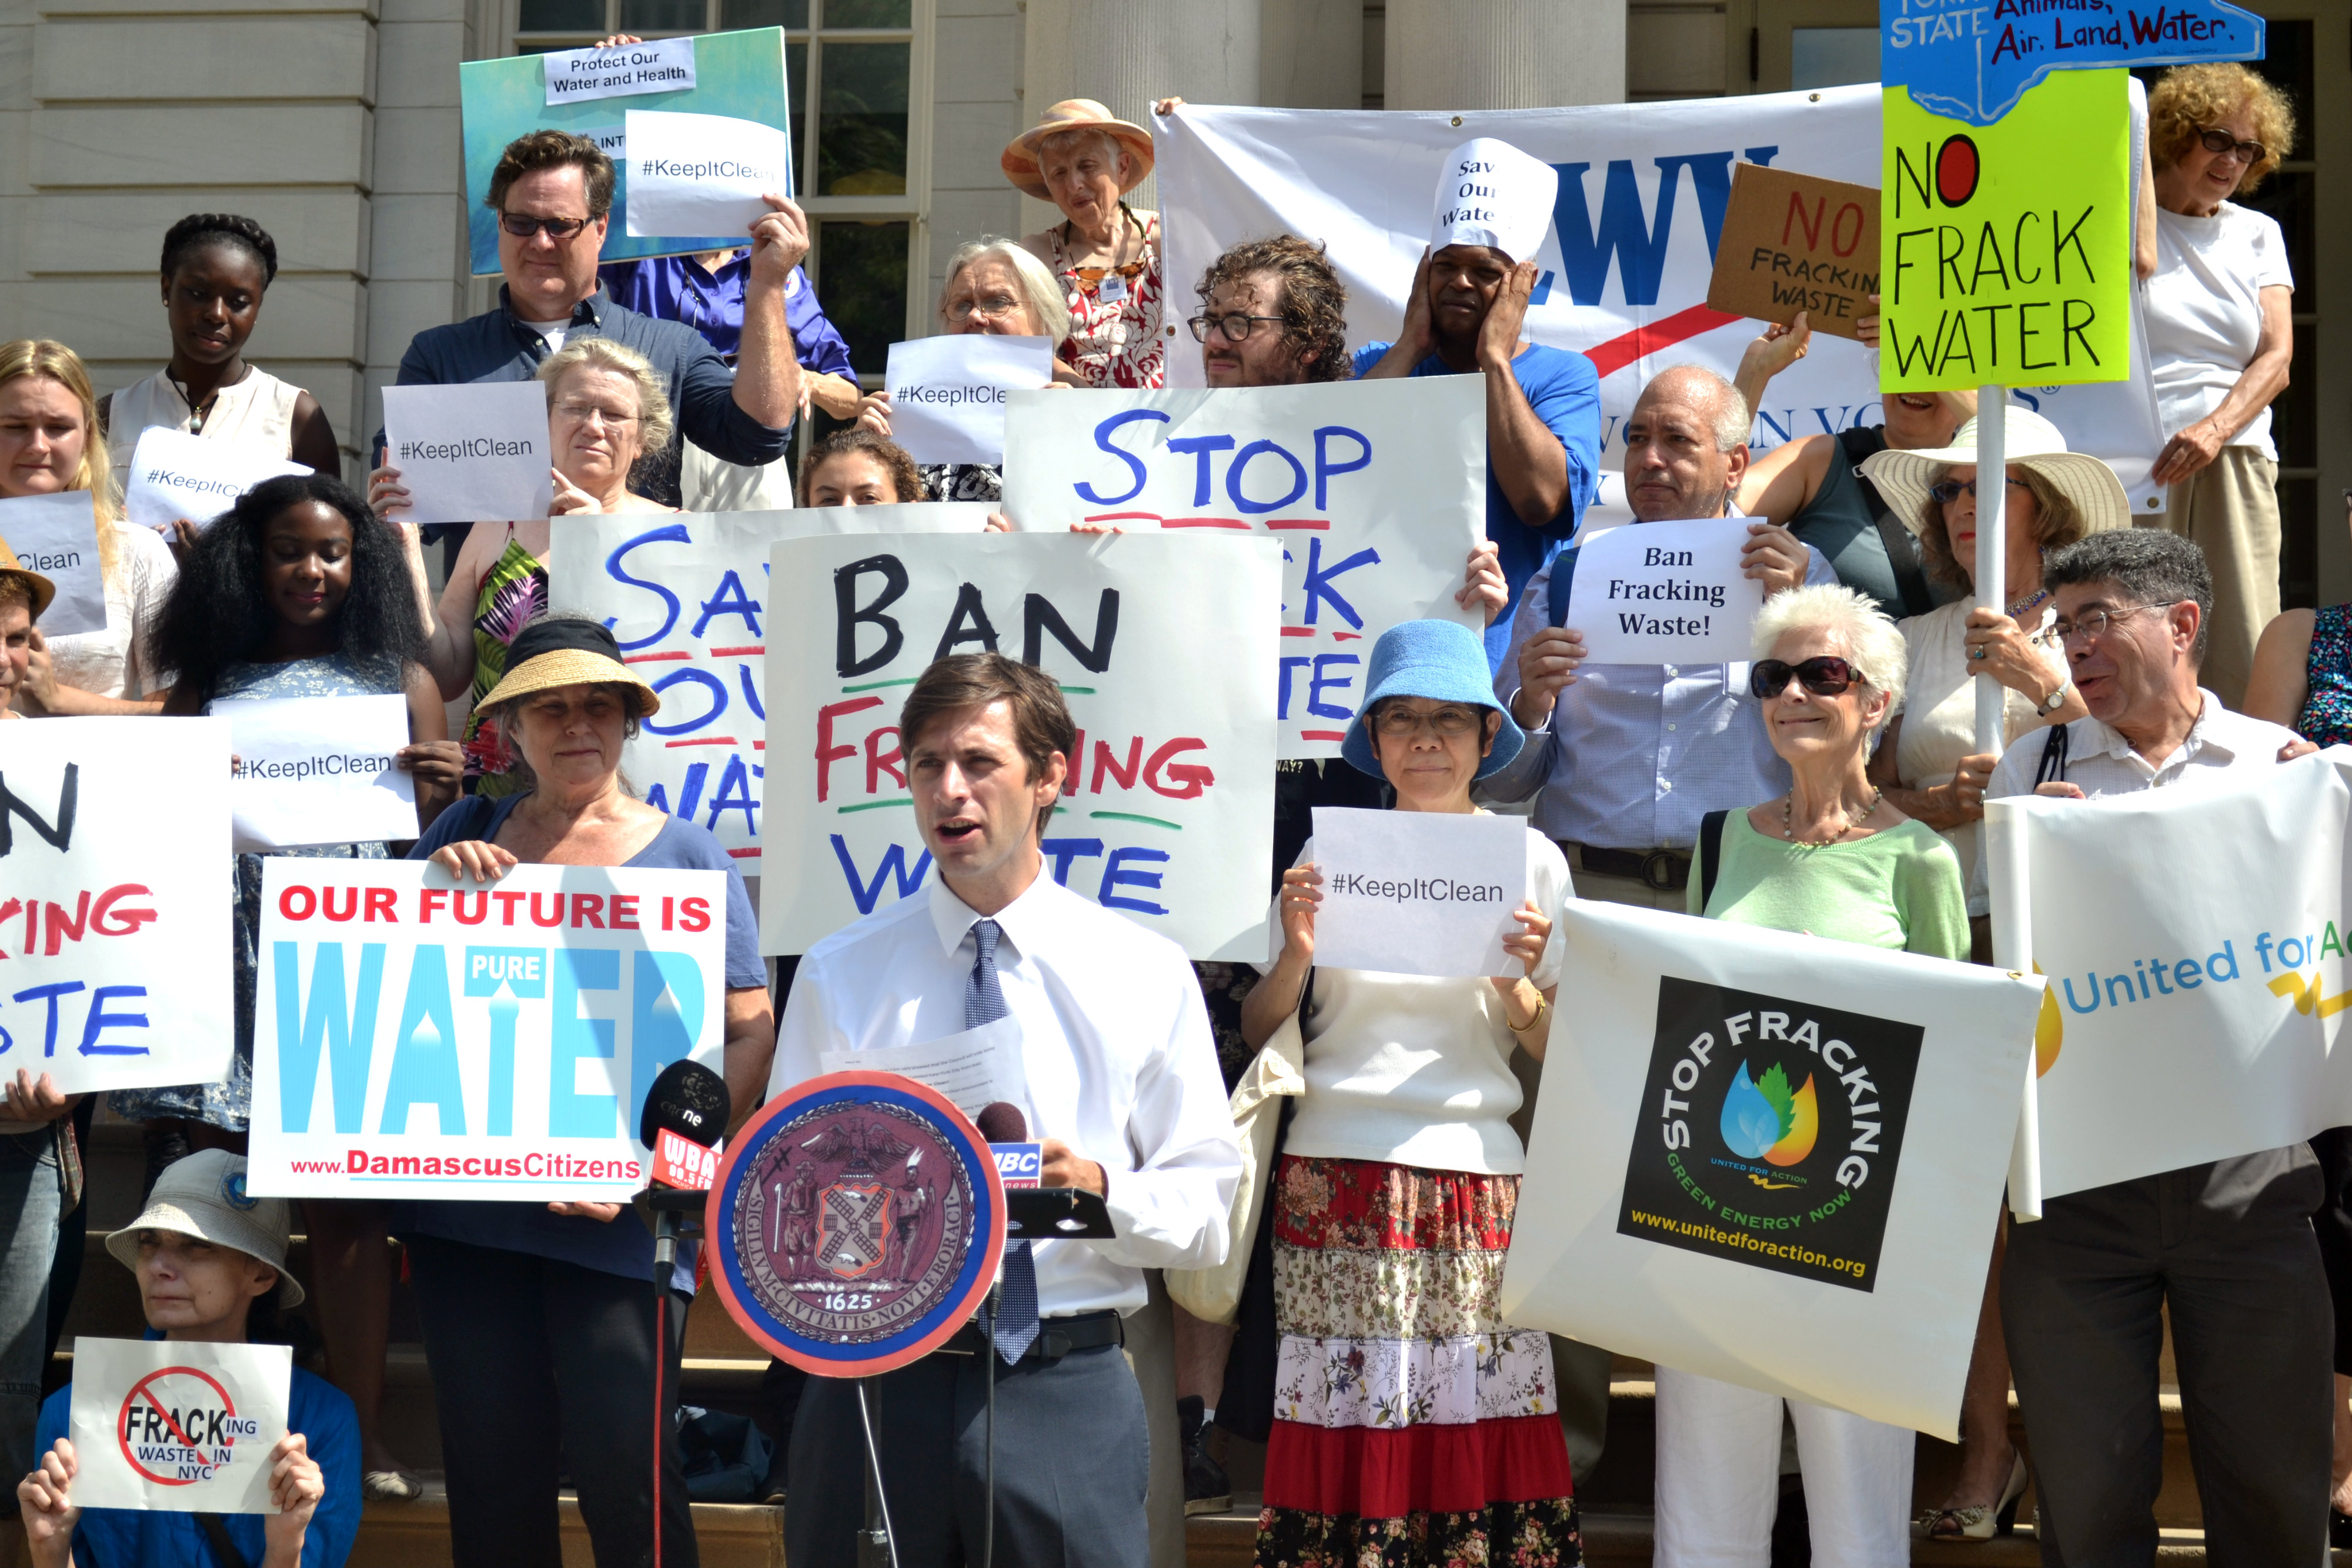 New York City Councilmember Stephen Levin, lead sponsor of Intro 446-A, speaks at a rally on the steps of City Hall in favor of the bill, which would ban hydraulic fracturing waste from New York City, on Aug. 16, 2016. (Courtesy of the Office of Councilmember Stephen Levin)